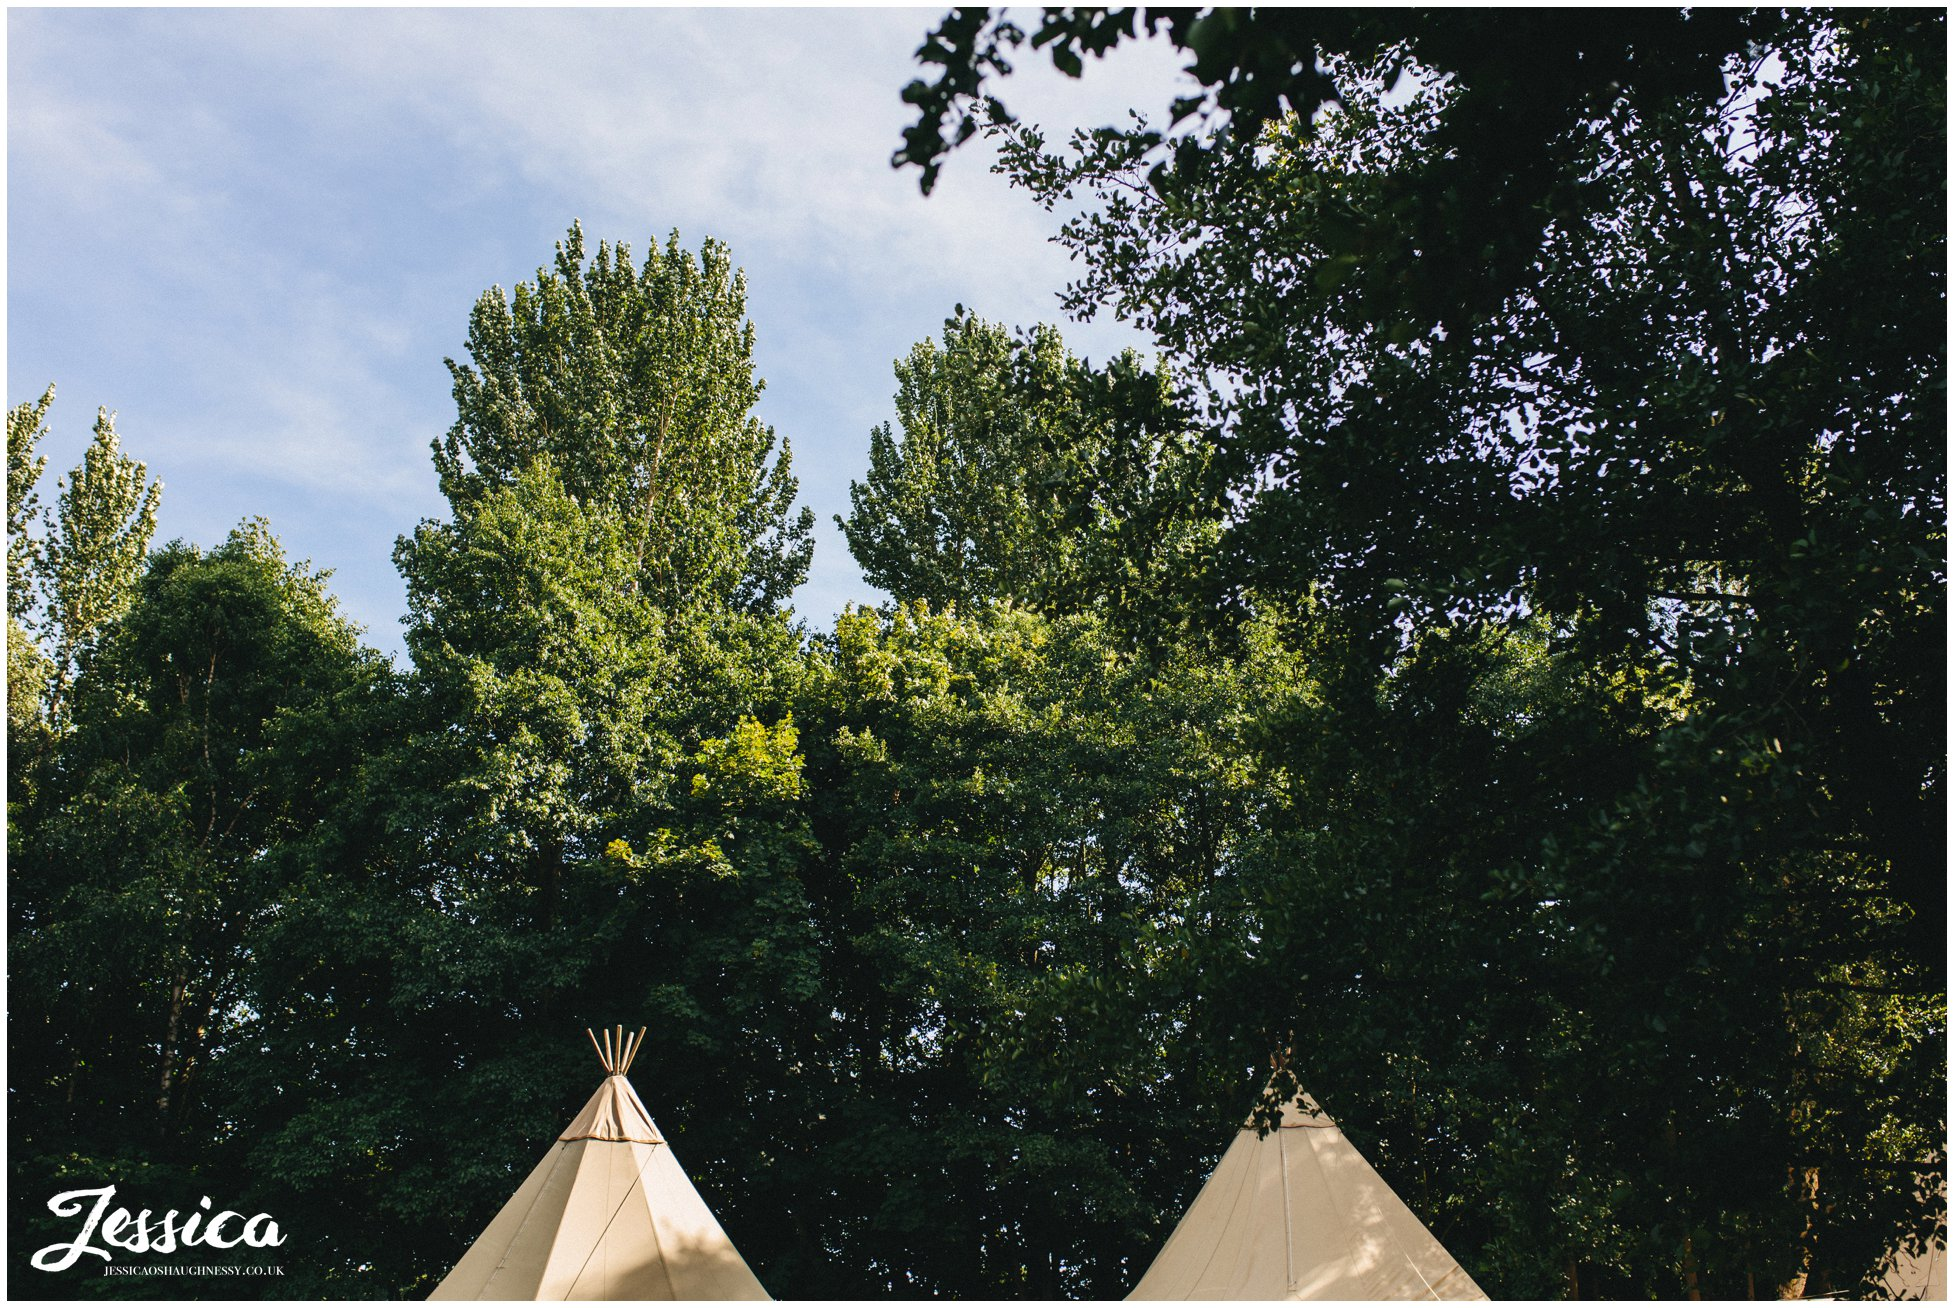 the tipi is set up in the field ready for the wedding reception